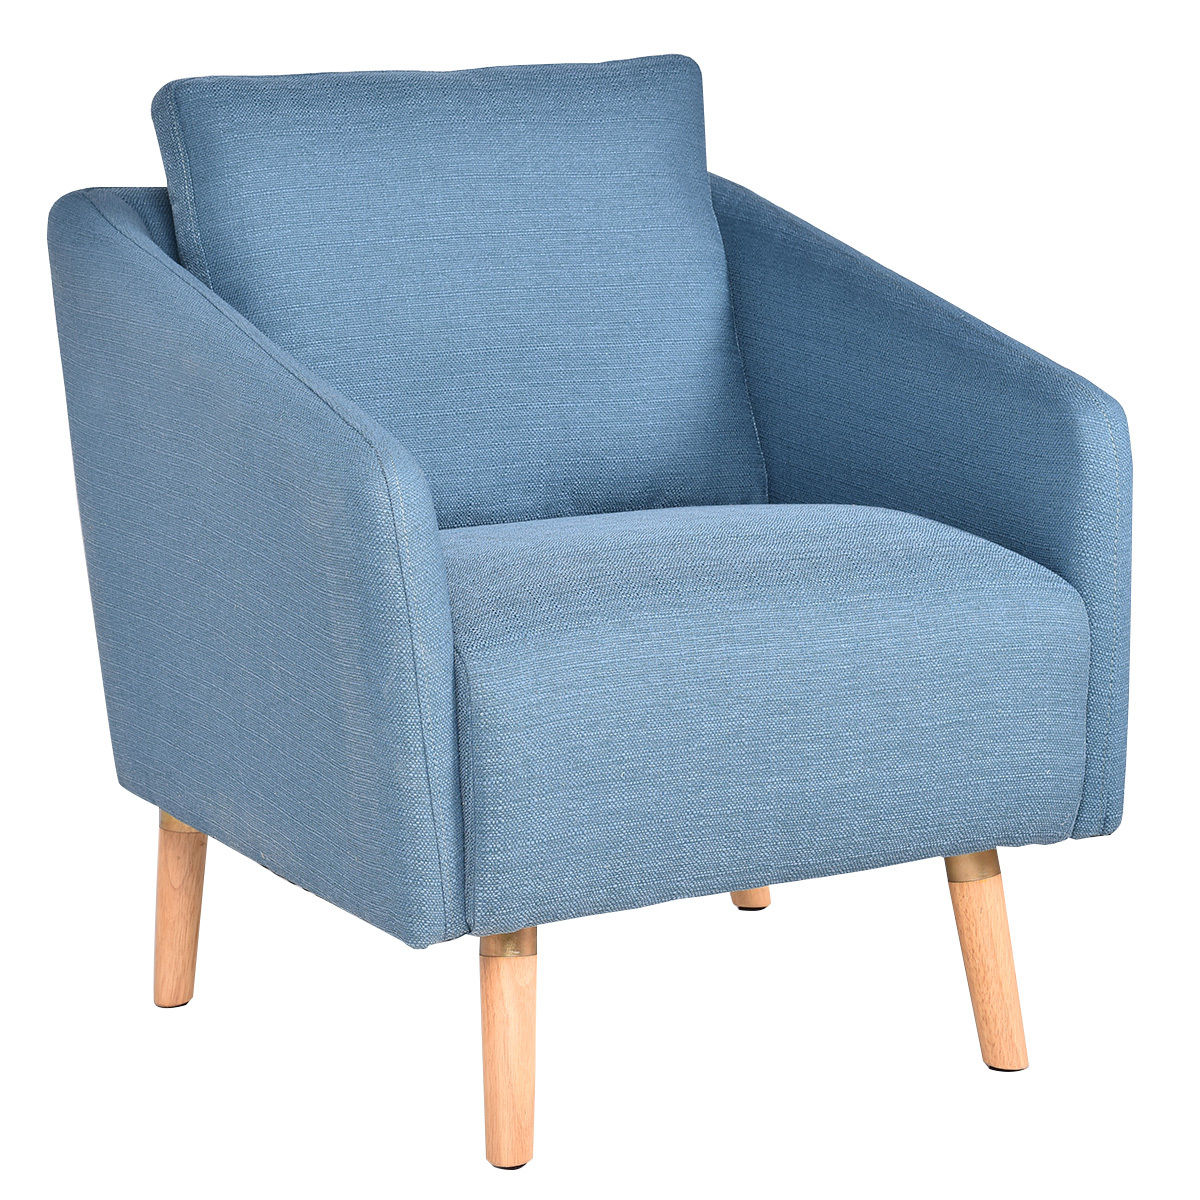 Giantex Living Room Accent Leisure Chair Modern Fabric Upholstered Arm Chair Single Sofa Chairs Home Furniture HW54386 anso contemporary teal color fabric accent chair